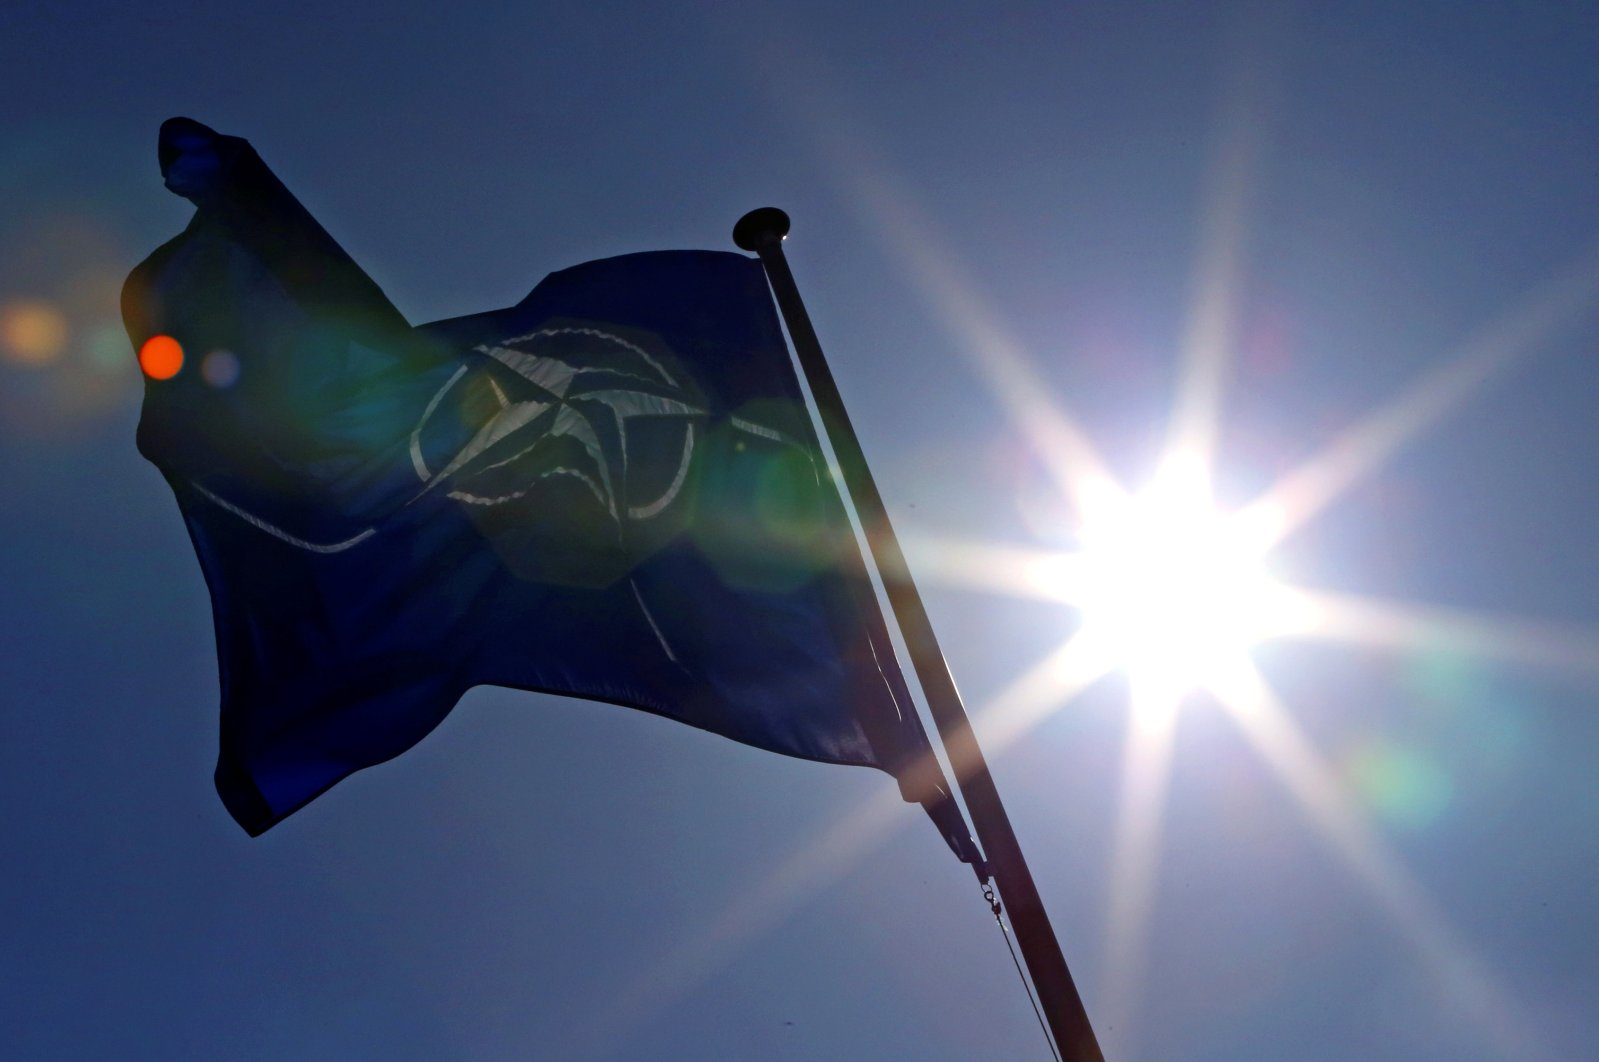 A NATO flag flies at the Alliance headquarters in Brussels during a NATO ambassadors meeting on the situation in Ukraine and the Crimea region, March 2, 2014. (Reuters Photo)